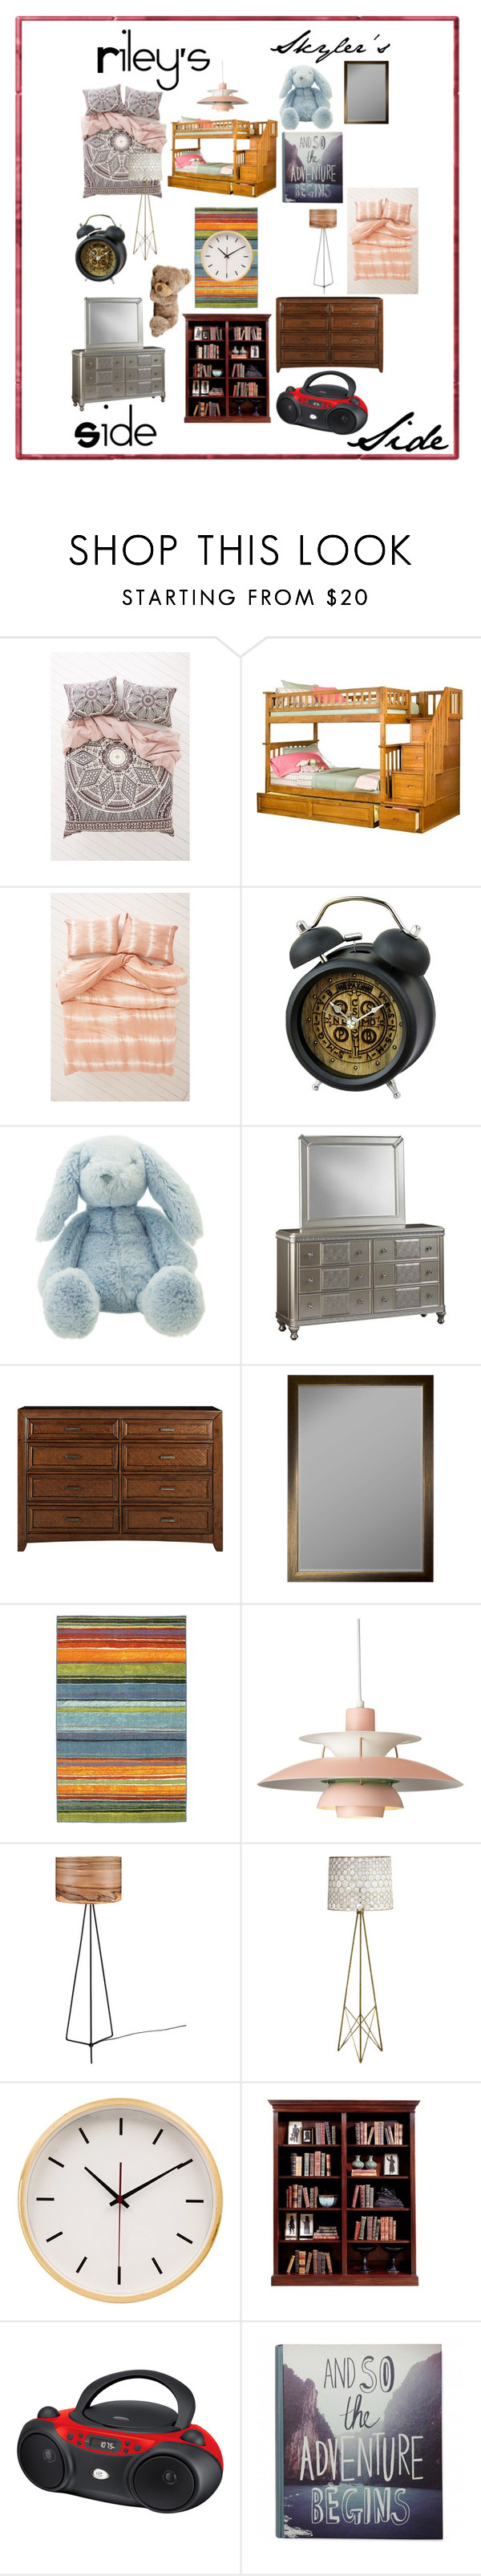 """""""Skylar's and Riley's Bedroom - Twin love"""" by twilightphonix on Polyvore featuring interior, interiors, interior design, home, home decor, interior decorating, Magical Thinking, Urban Outfitters and bedroom"""